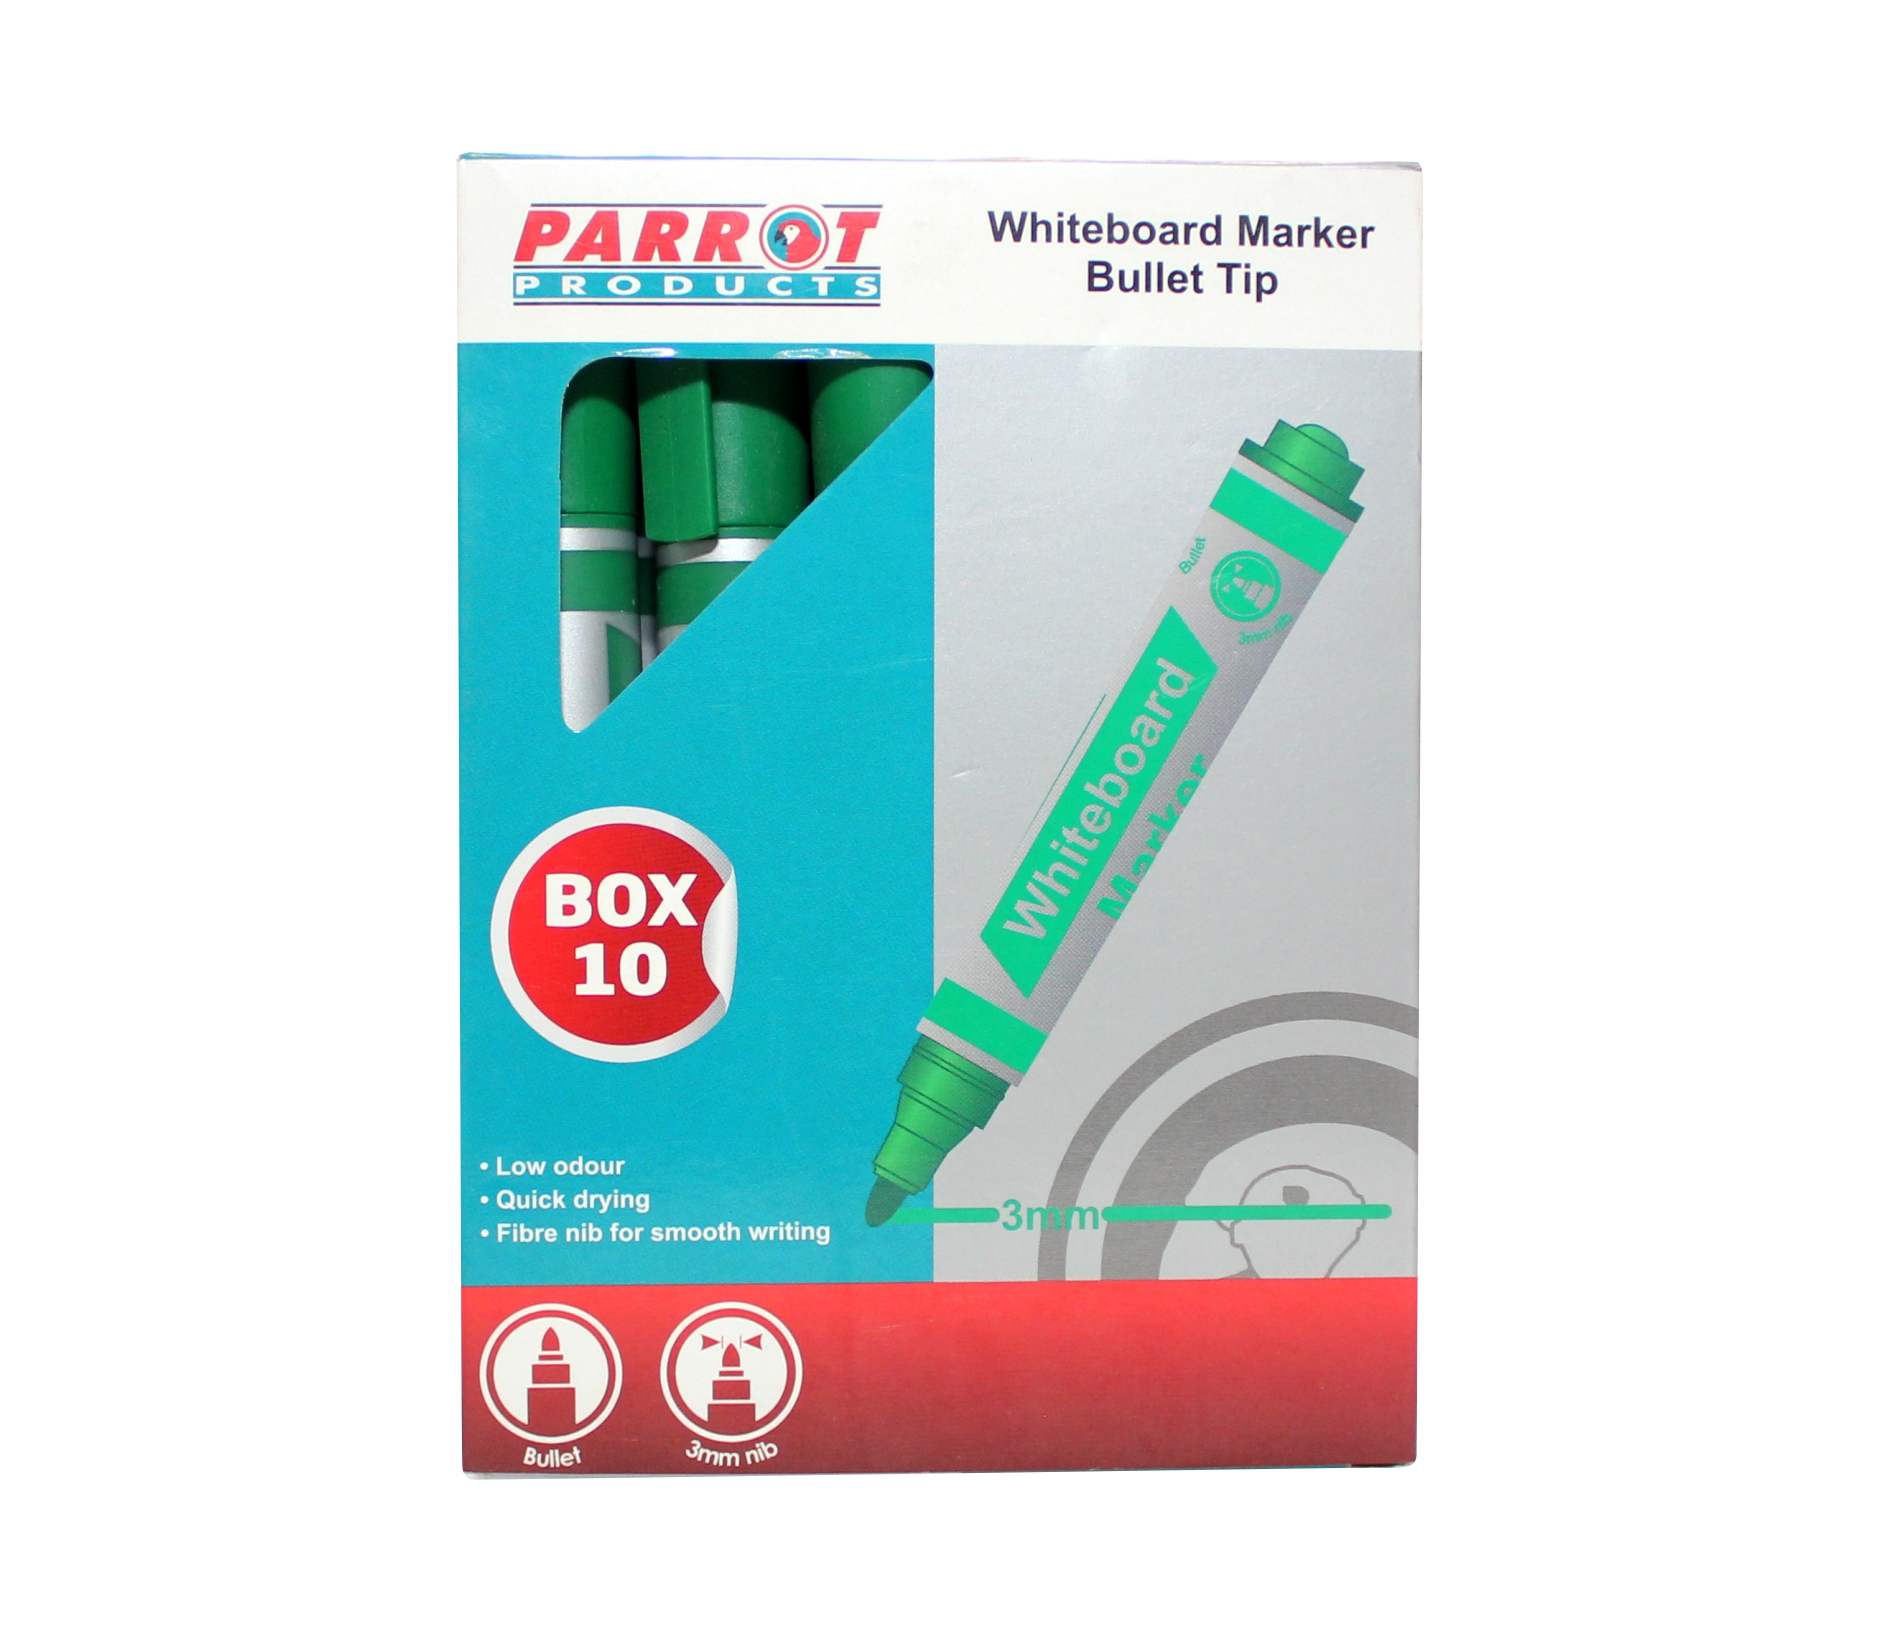 Whiteboard Markers (10 Markers, Bullet Tip, Green)